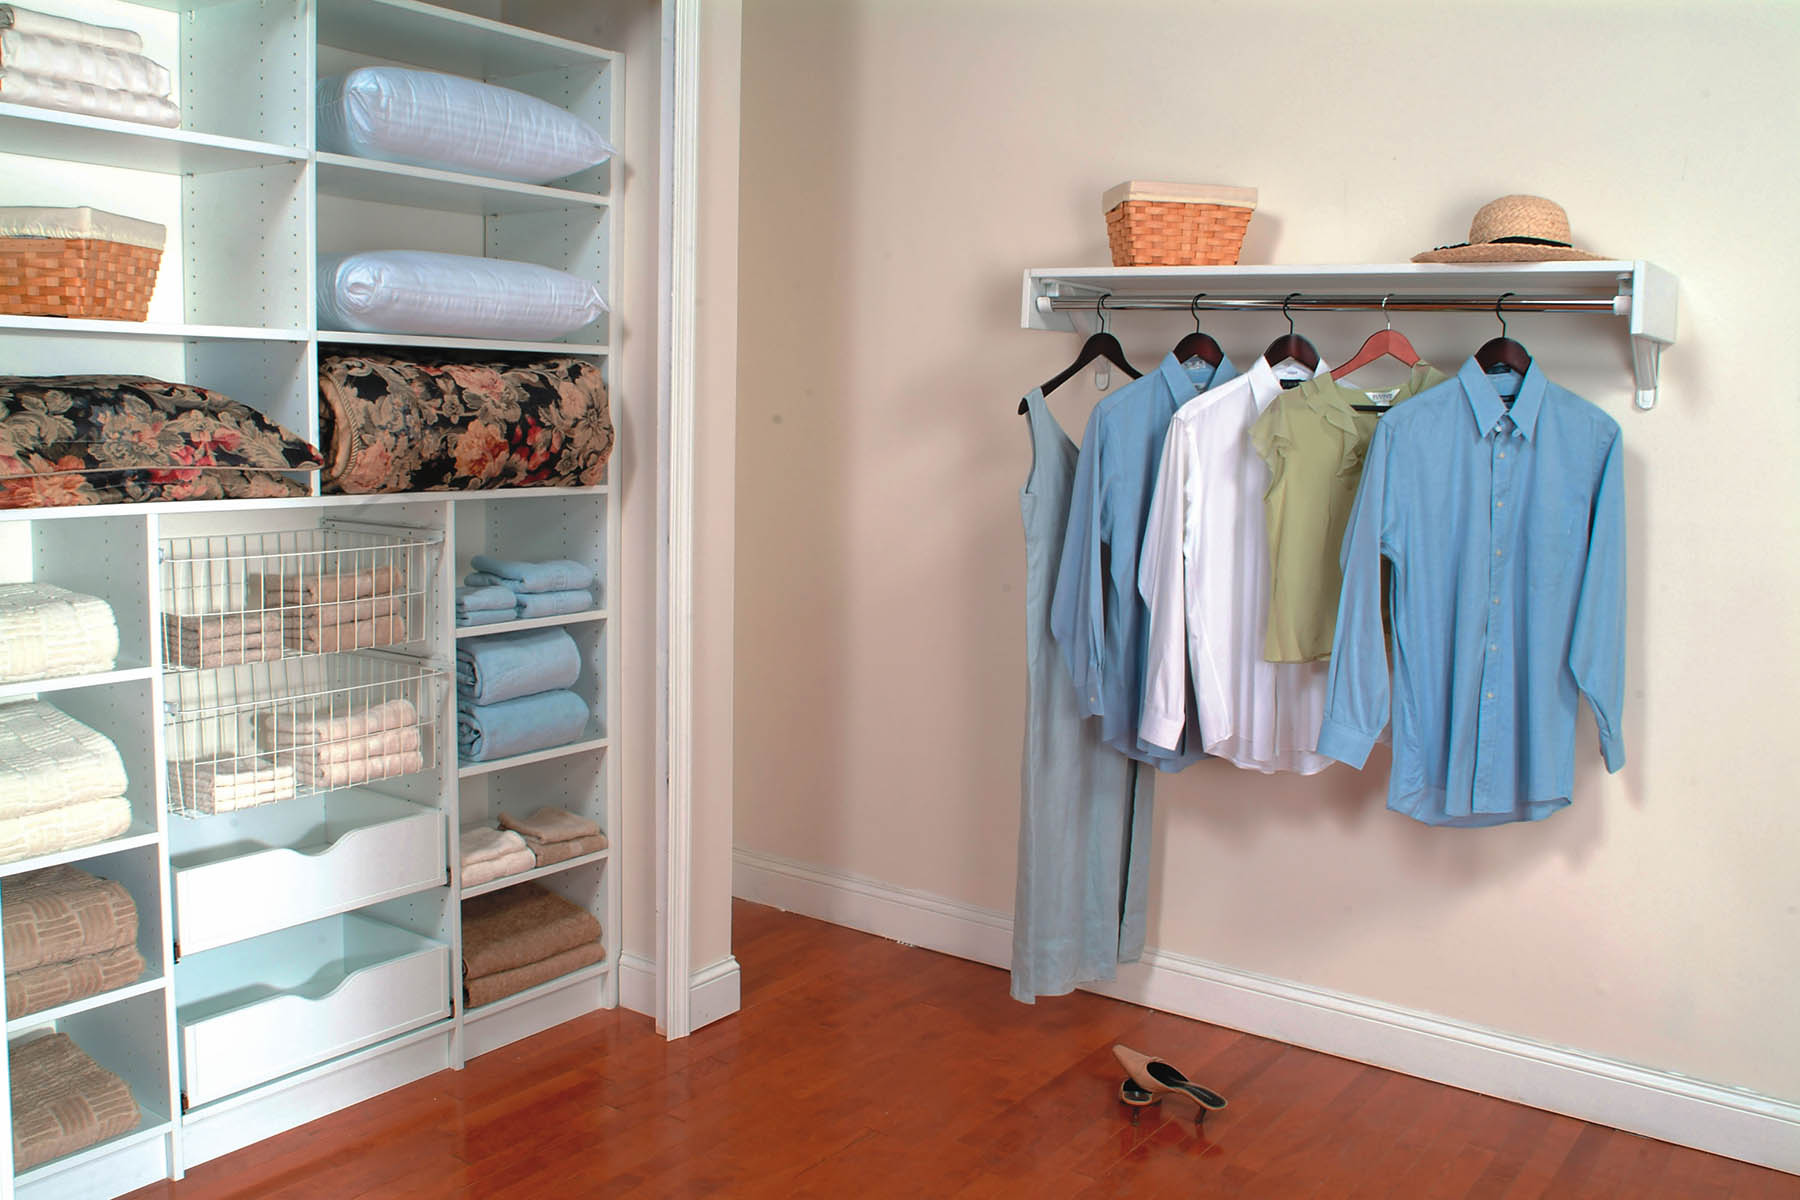 Organized linen closet with additional side shelf